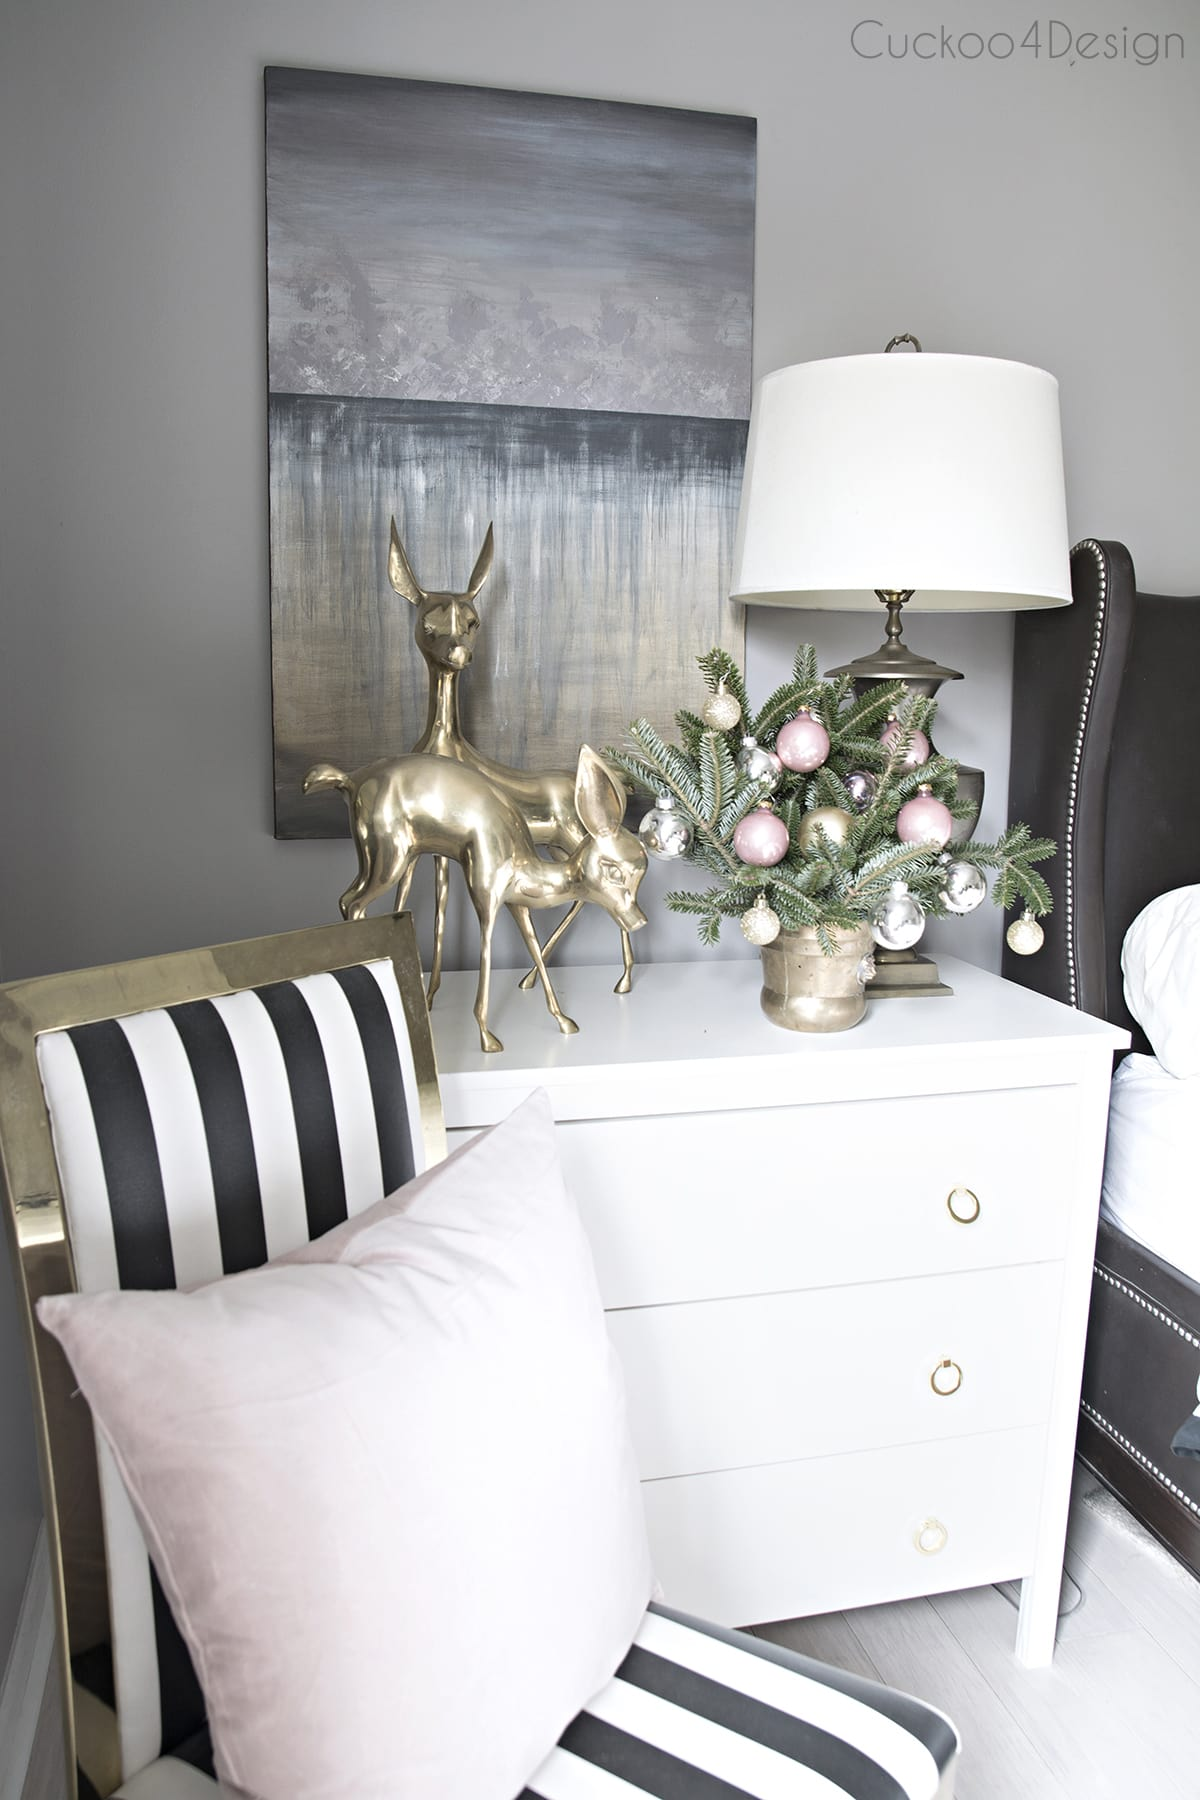 brass, black and white striped chair with blush pillow | brass deer and moody abstract art